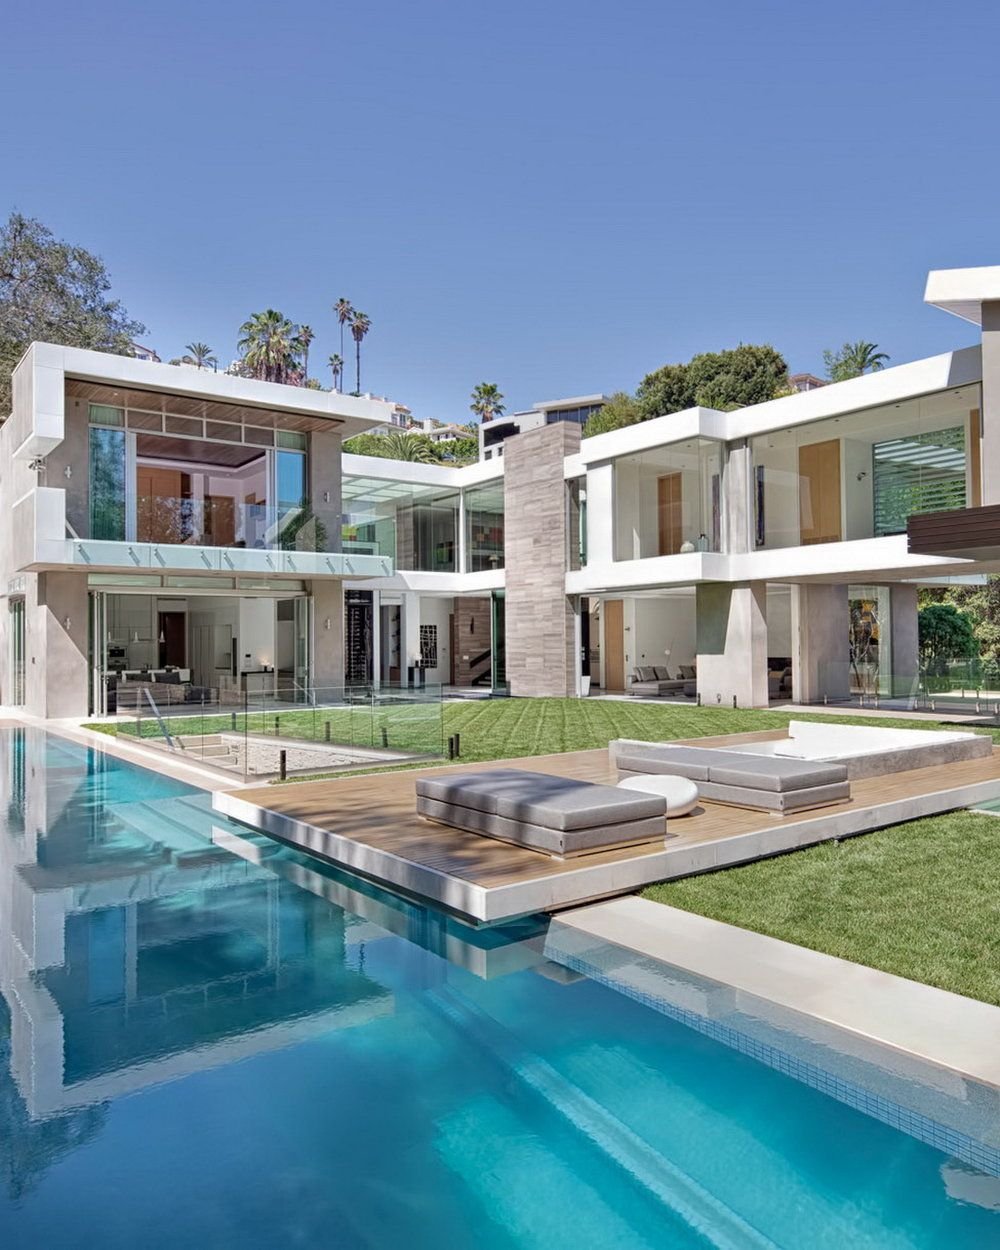 Luxury Residence 1307 Sierra Alta Way Los Angeles Ca Mansions Modern Mansion Hollywood Homes